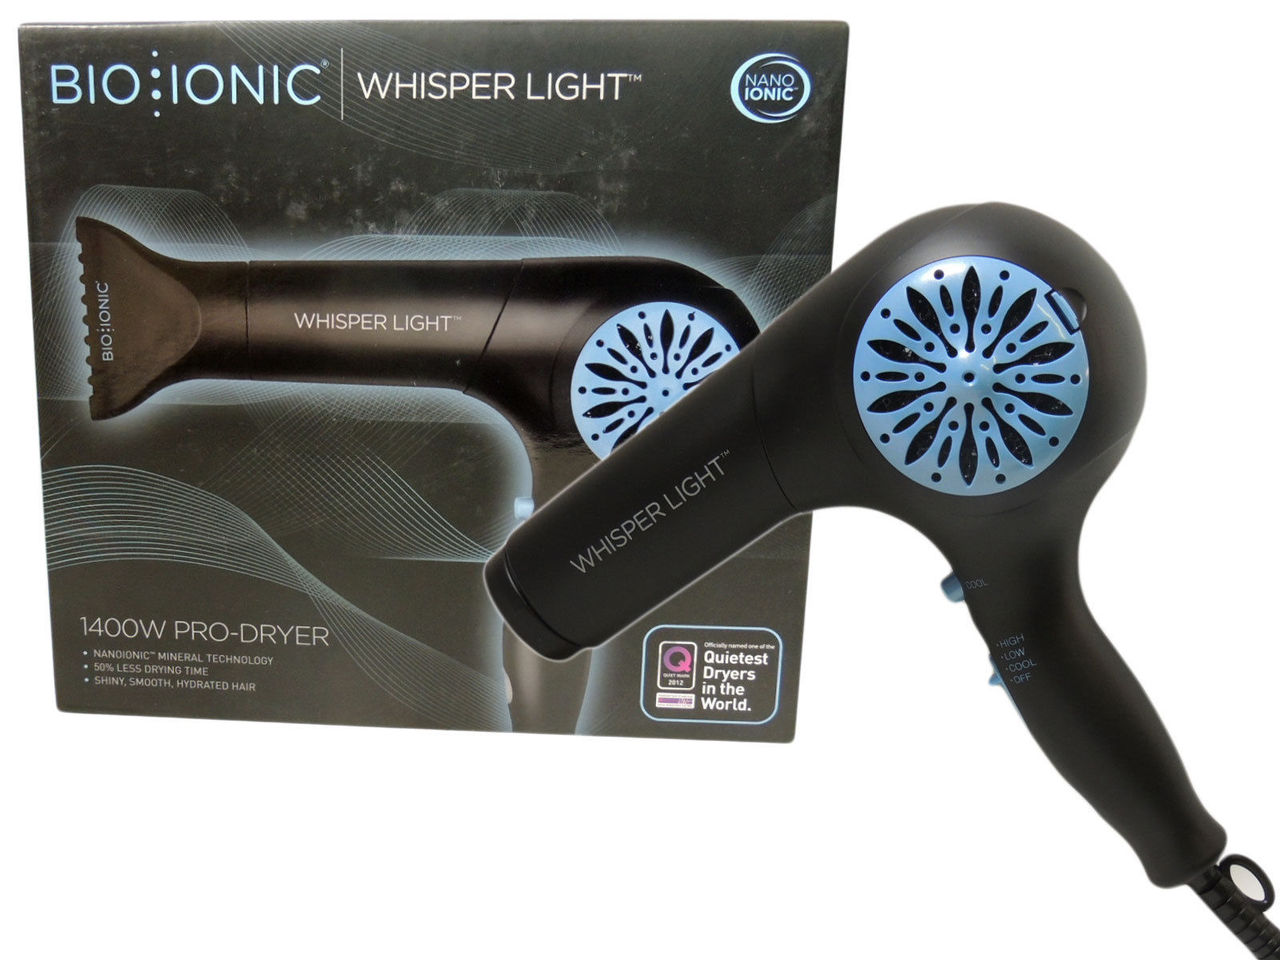 Bio Ionic Whisper Light Pro Blow Dryer Bi 3114